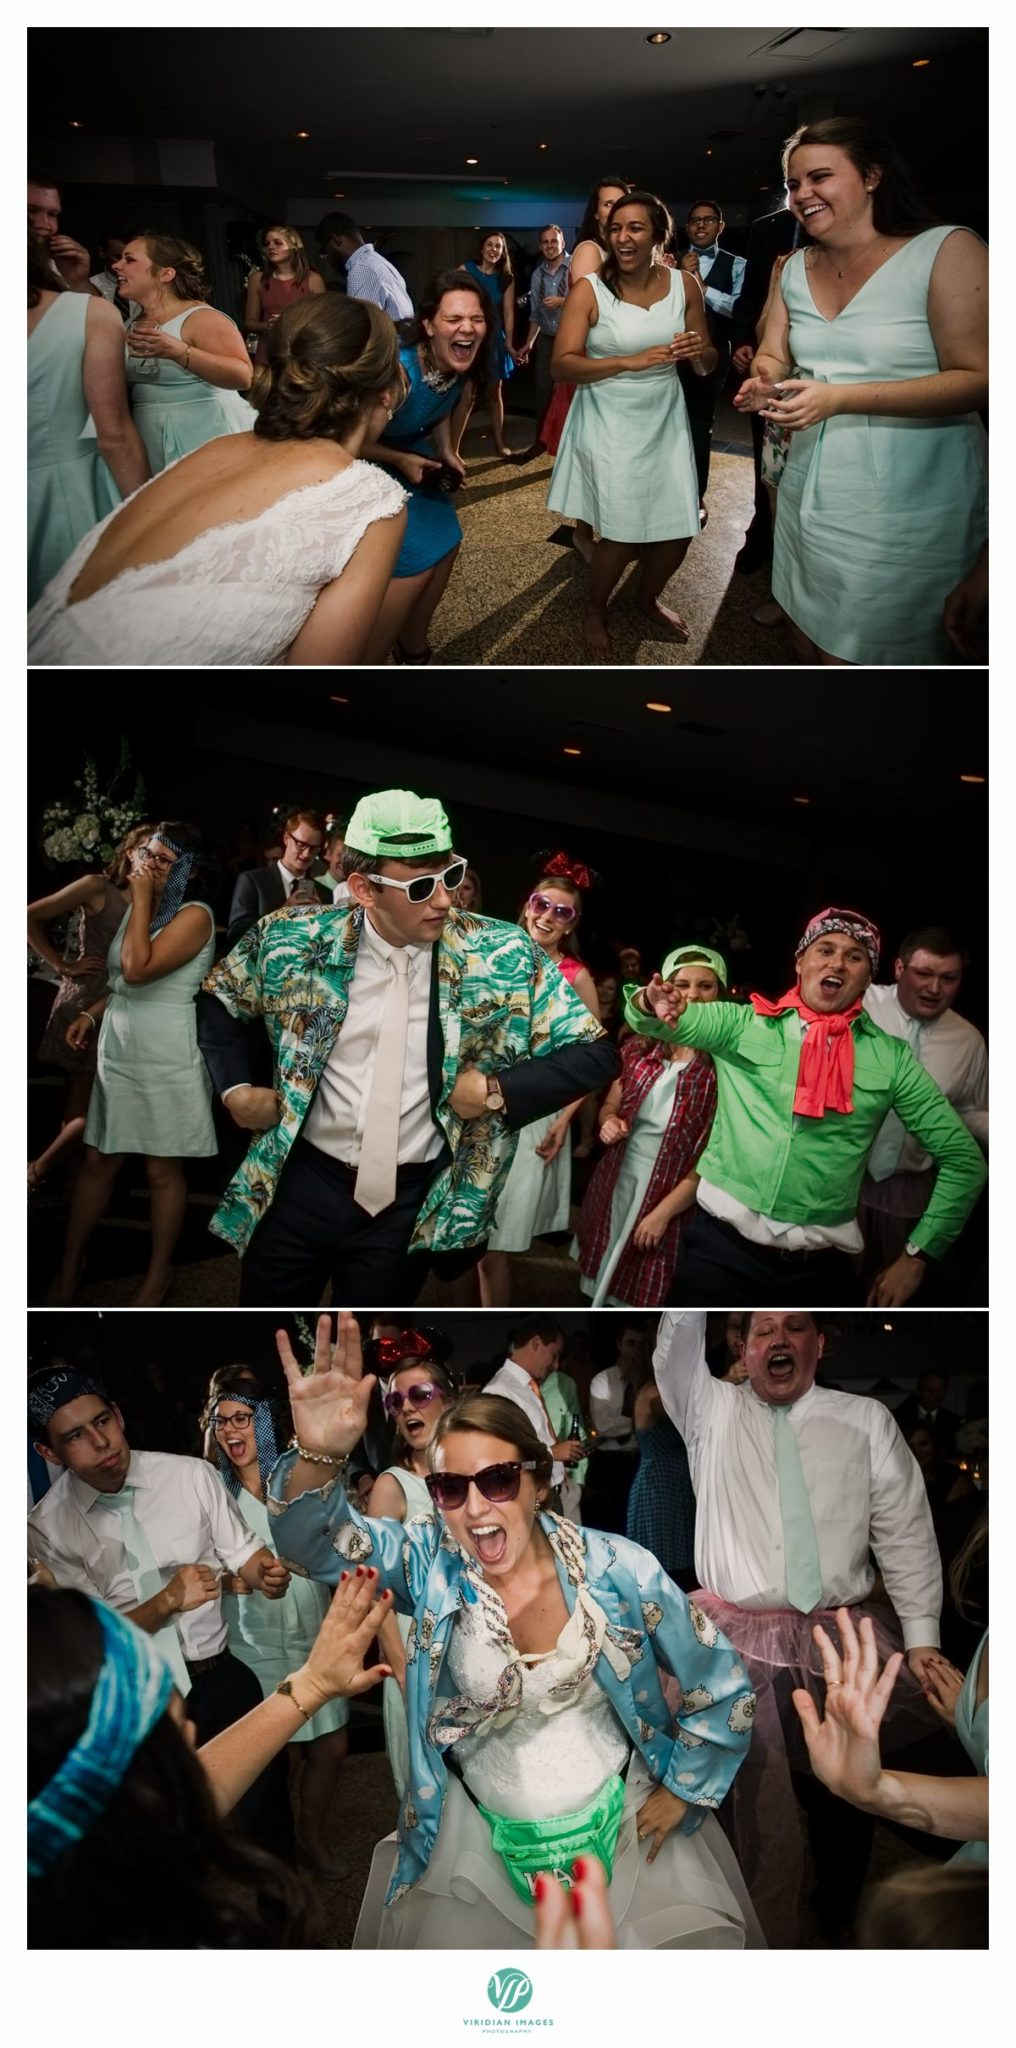 metropolitan-club-alpharetta-ga-wedding-photo-25